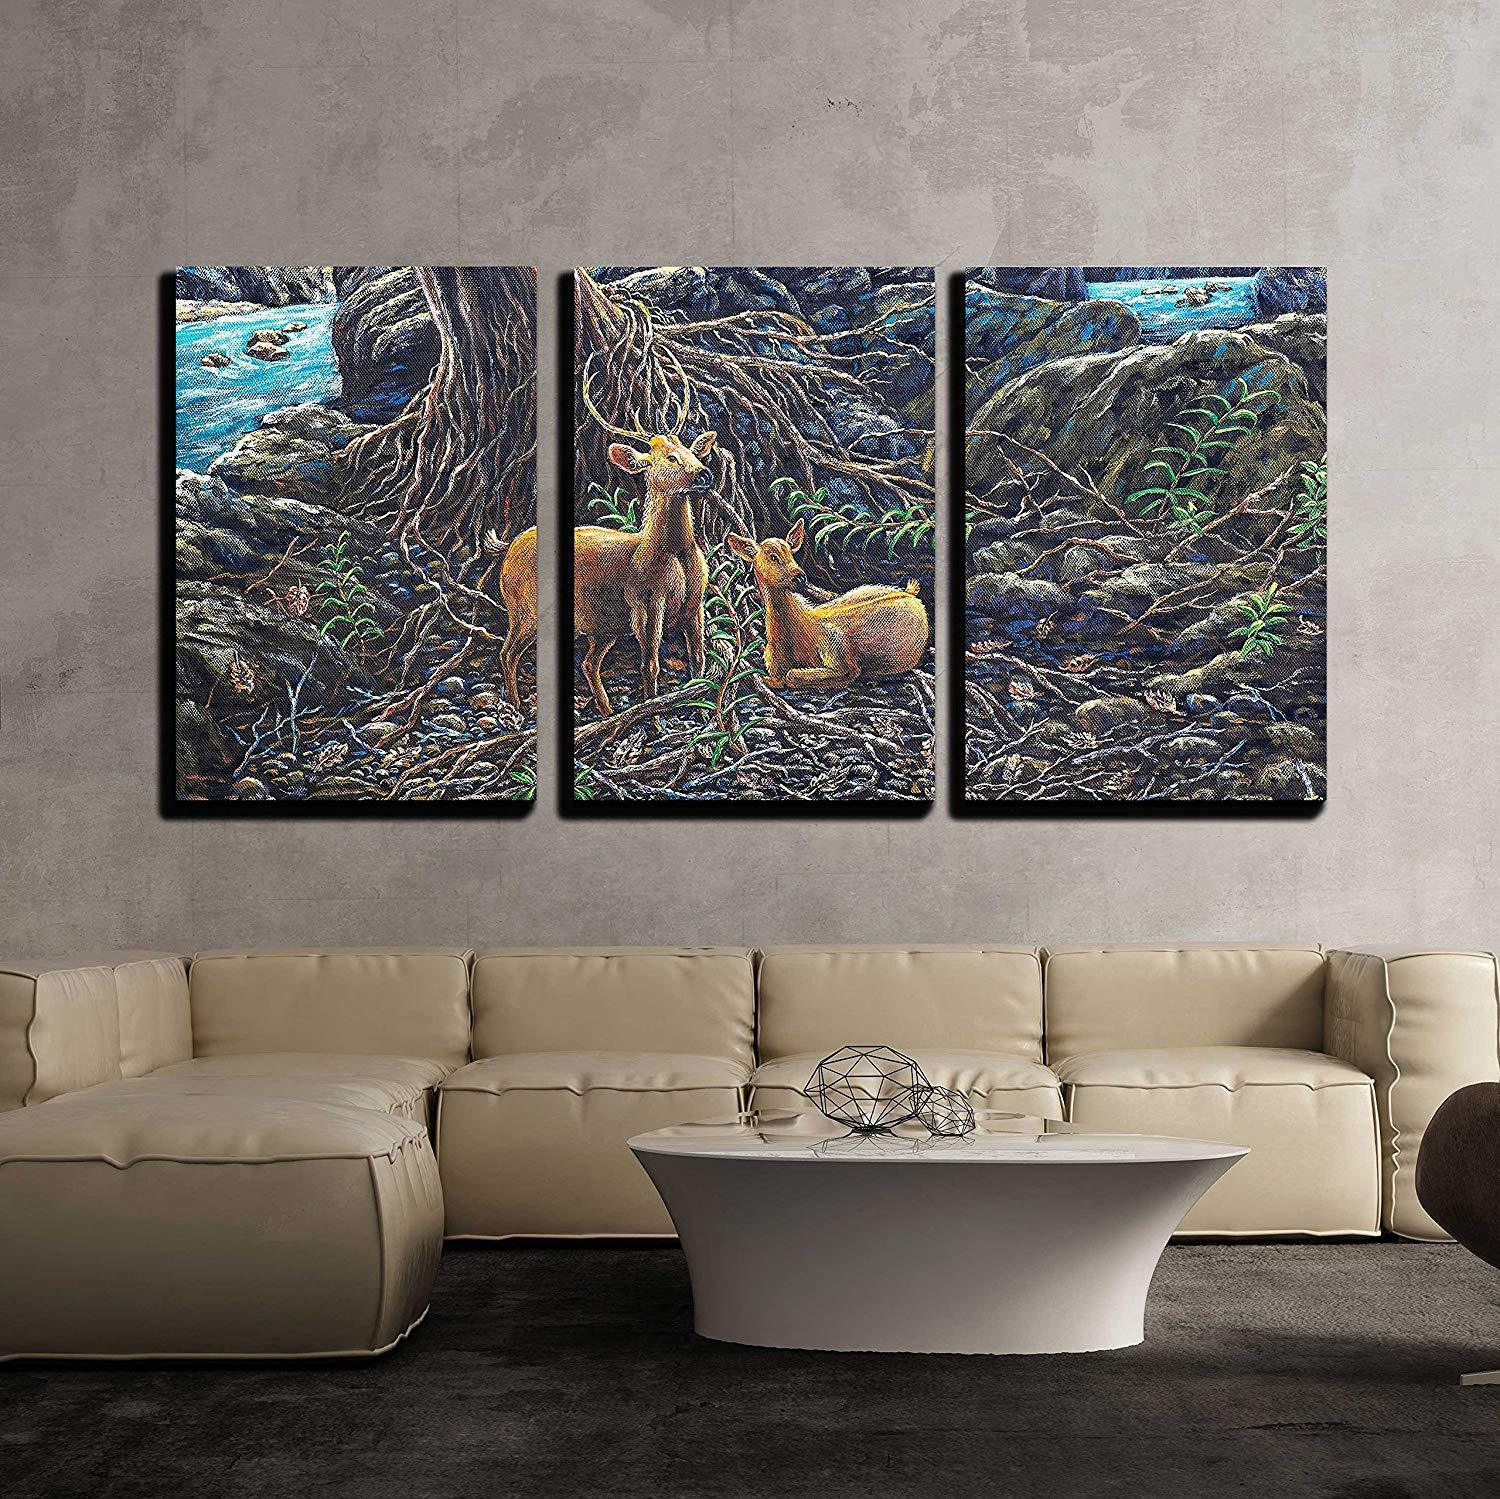 Wall26 - Oil Painting on Canval Deer in the Forest - CVS - 24 x36 x3 Panels